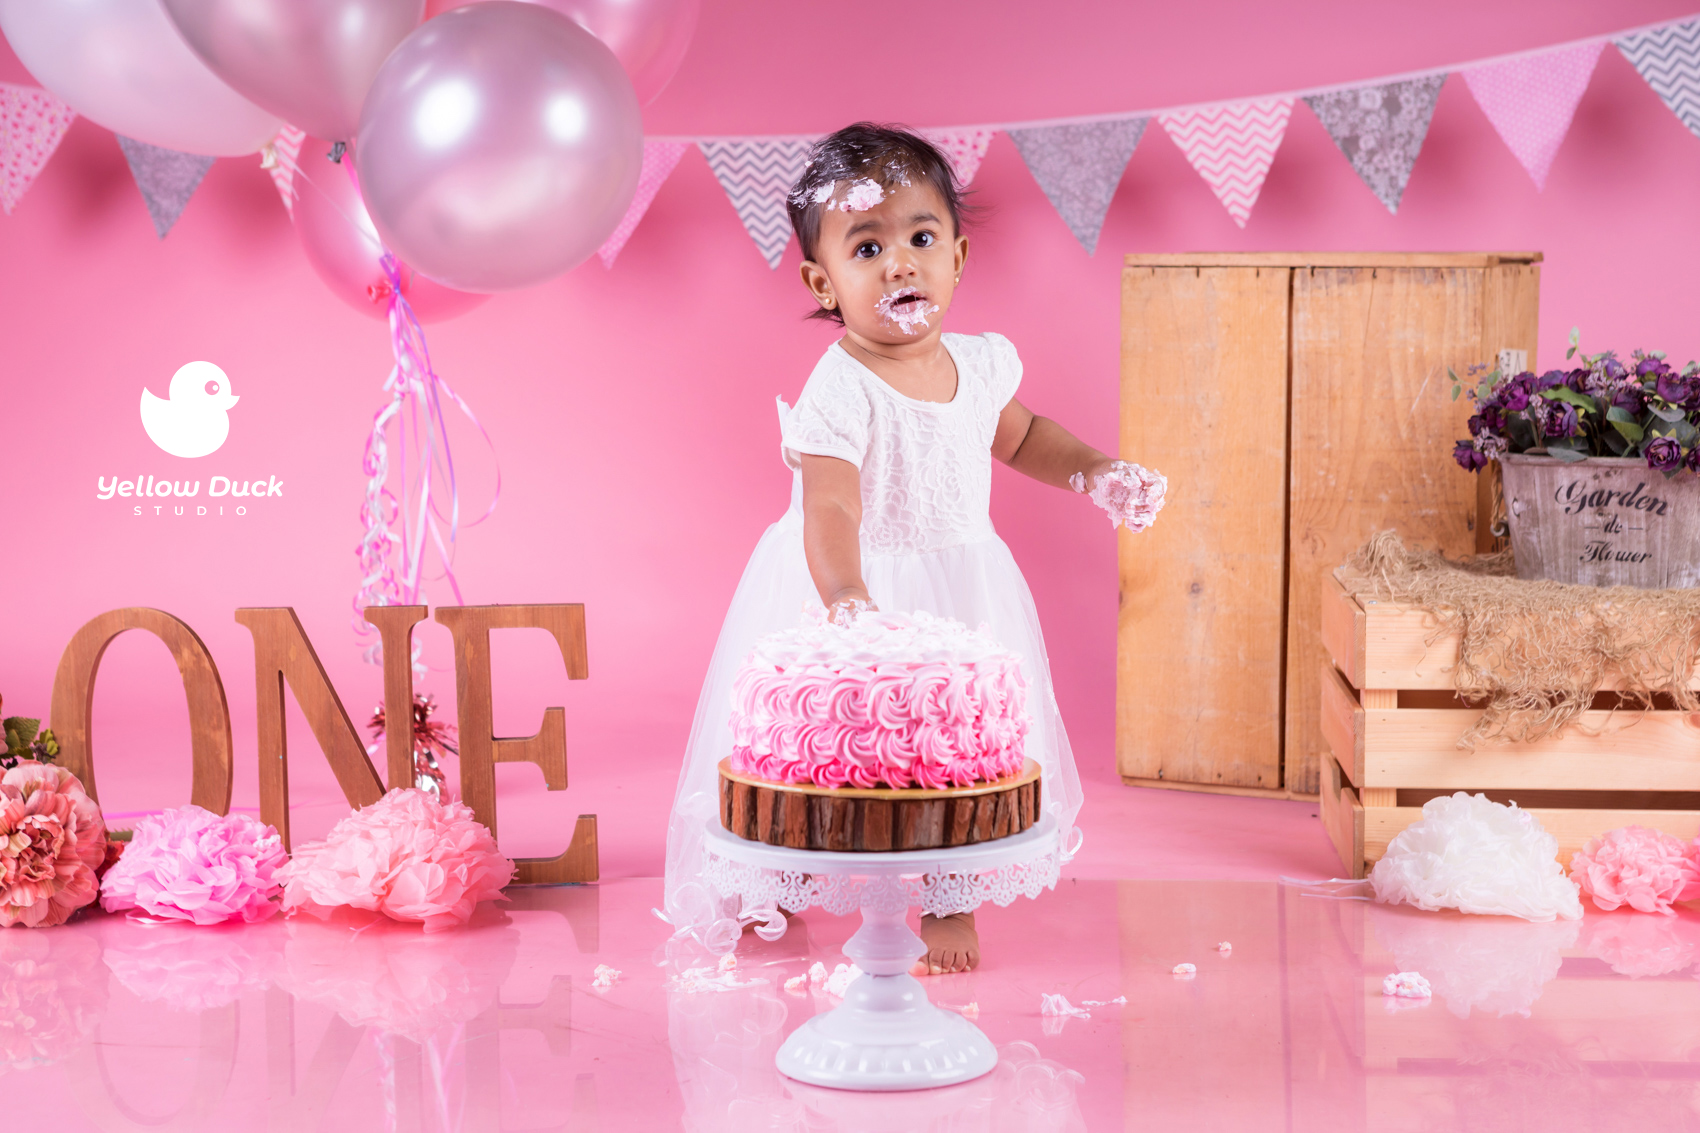 Little Princess Turns One!